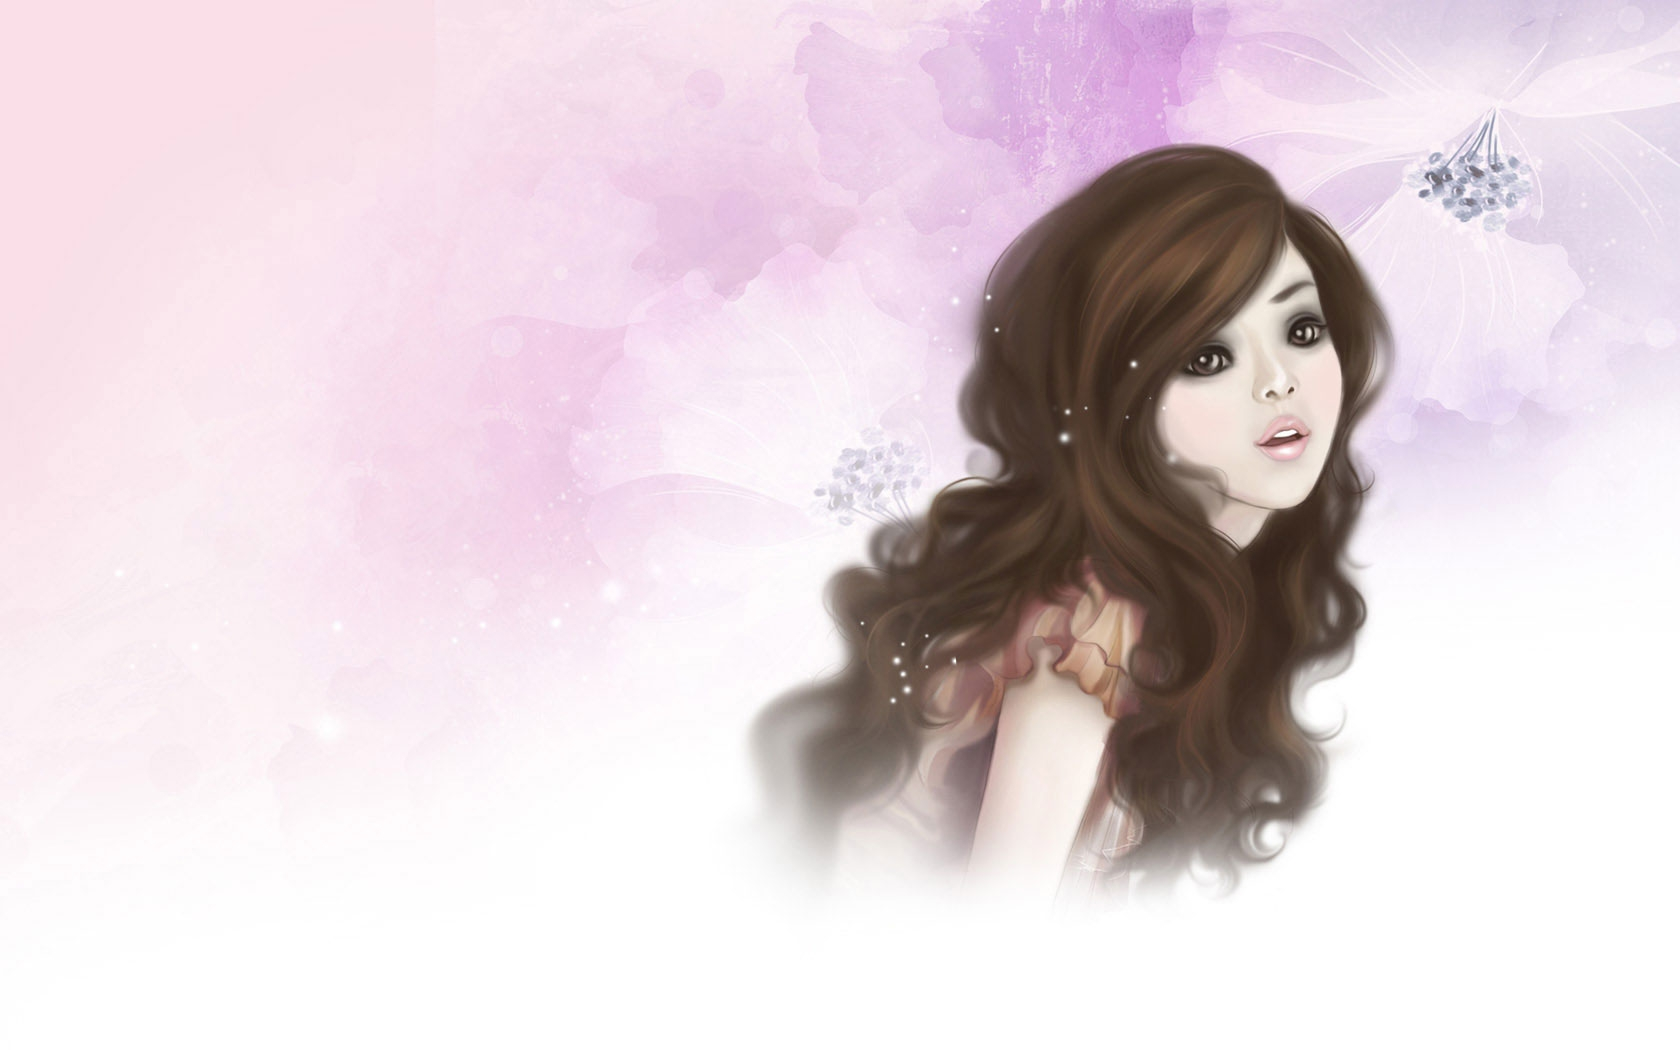 Image Pretty Cartoon Girl wallpapers and stock photos 1680x1050